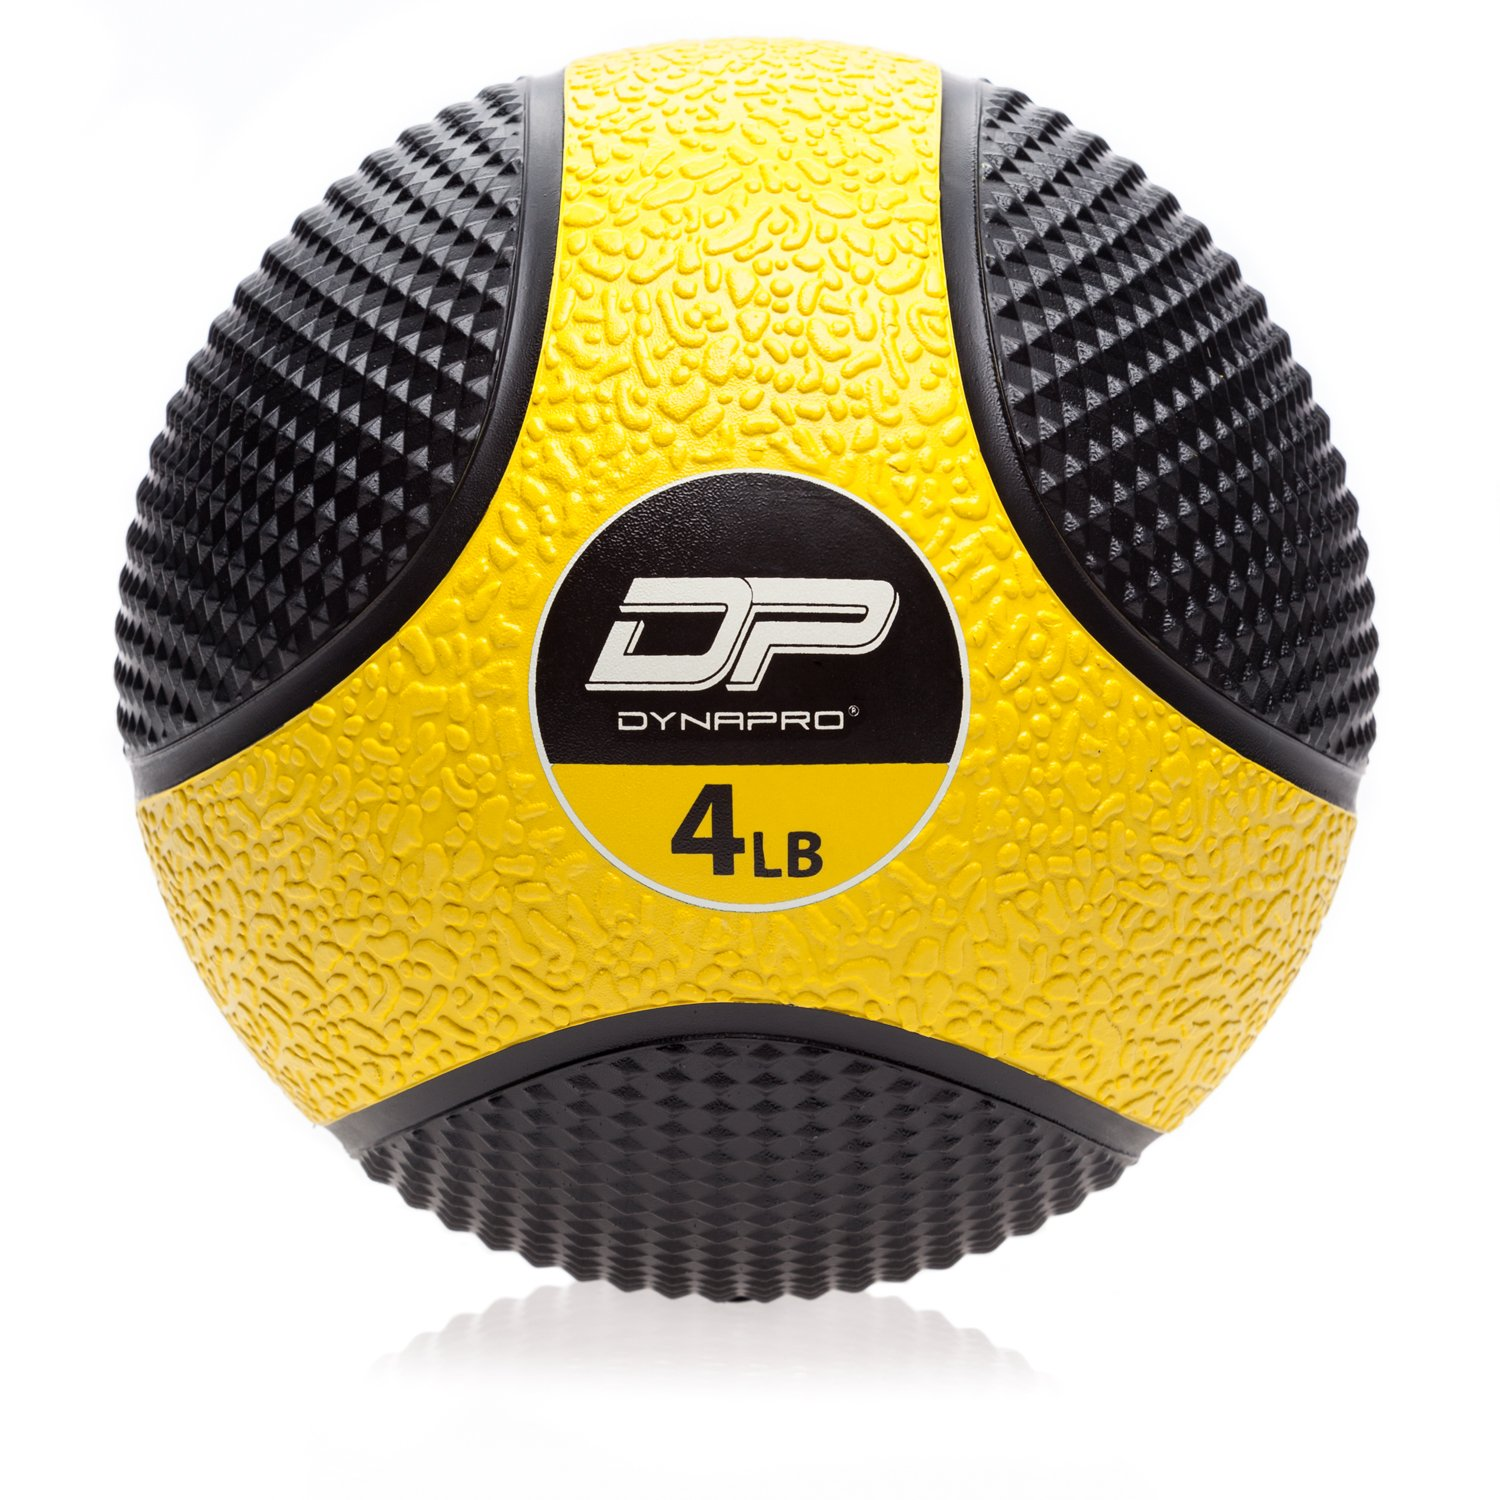 DYNAPRO Medicine Ball   Exercise Ball, Durable Rubber, Consistent Weight Distribution, Comfort Textured Grip for Strength Training (Yellow- 4LB)